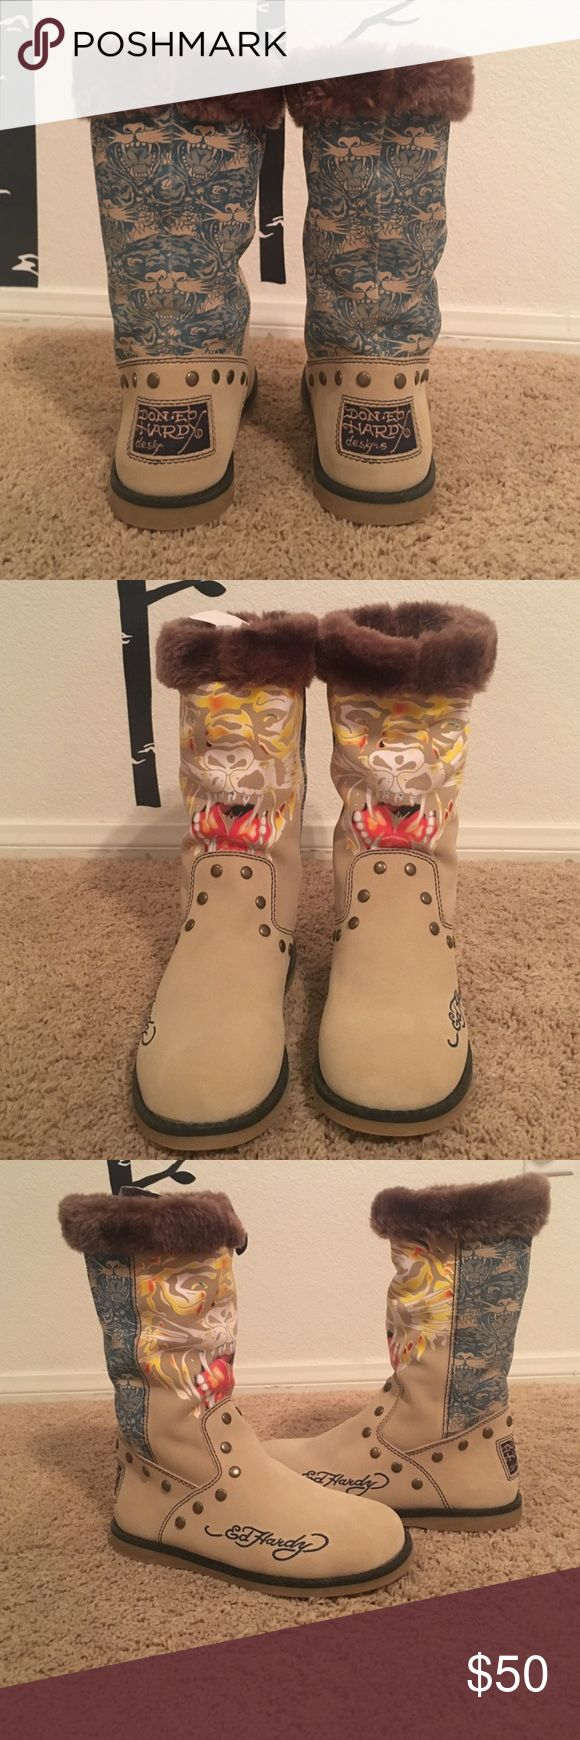 ❗️BRAND NEW Ed Hardy High Boots Ed hardy furry boots. Brand new never worn. MAKE AN OFFER Ed Hardy Shoes Winter & Rain Boots